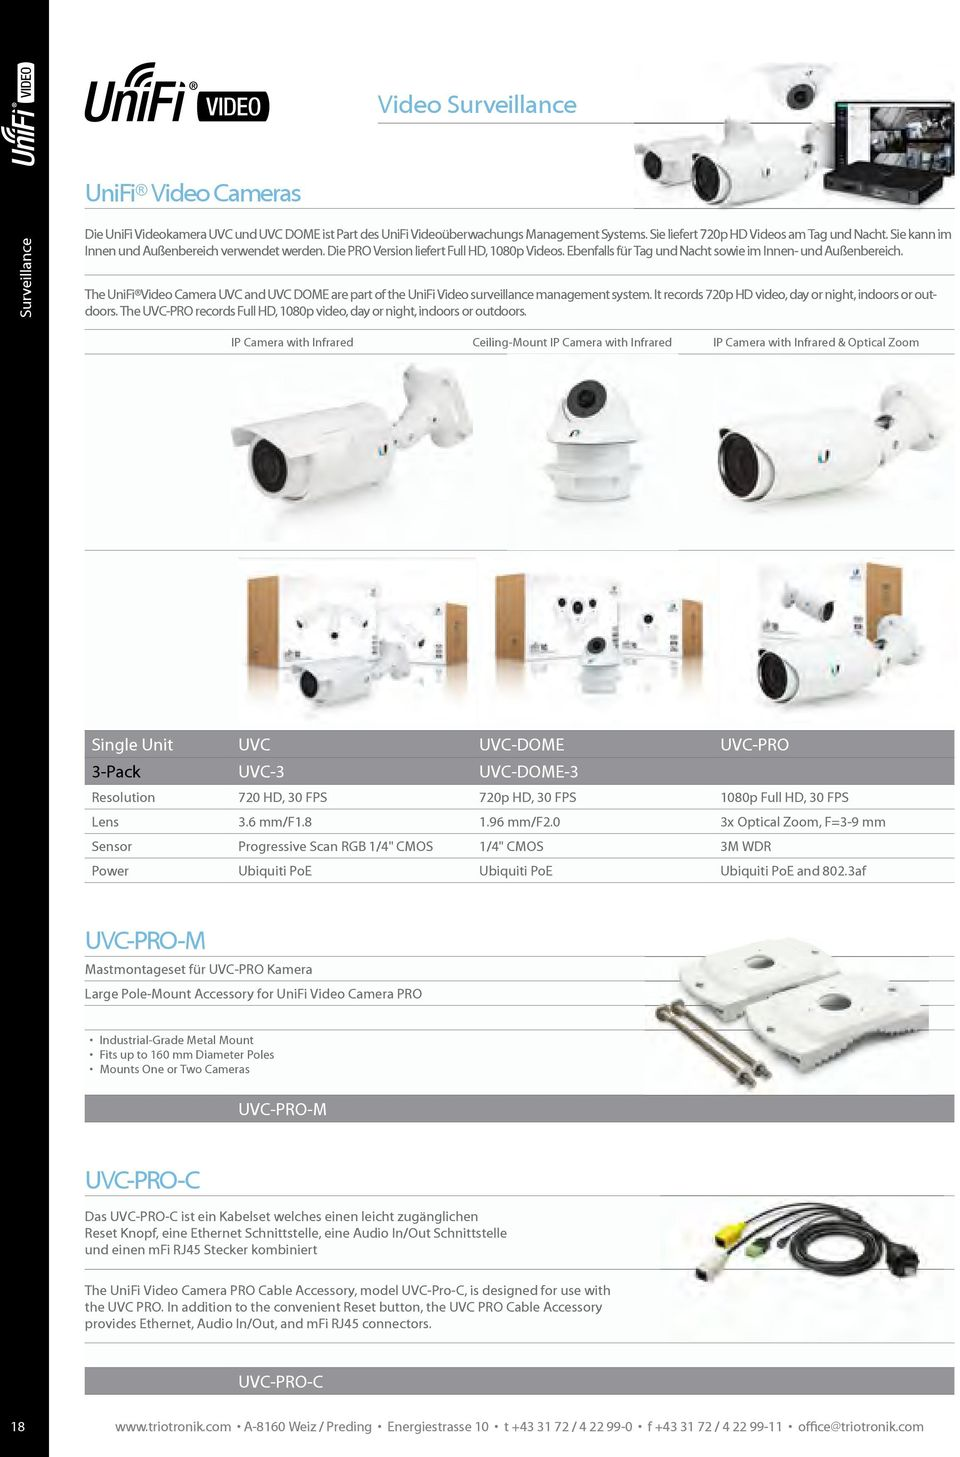 The UniFi Video Camera UVC and UVC DOME are part of the UniFi Video surveillance management system. It records 720p HD video, day or night, indoors or outdoors.